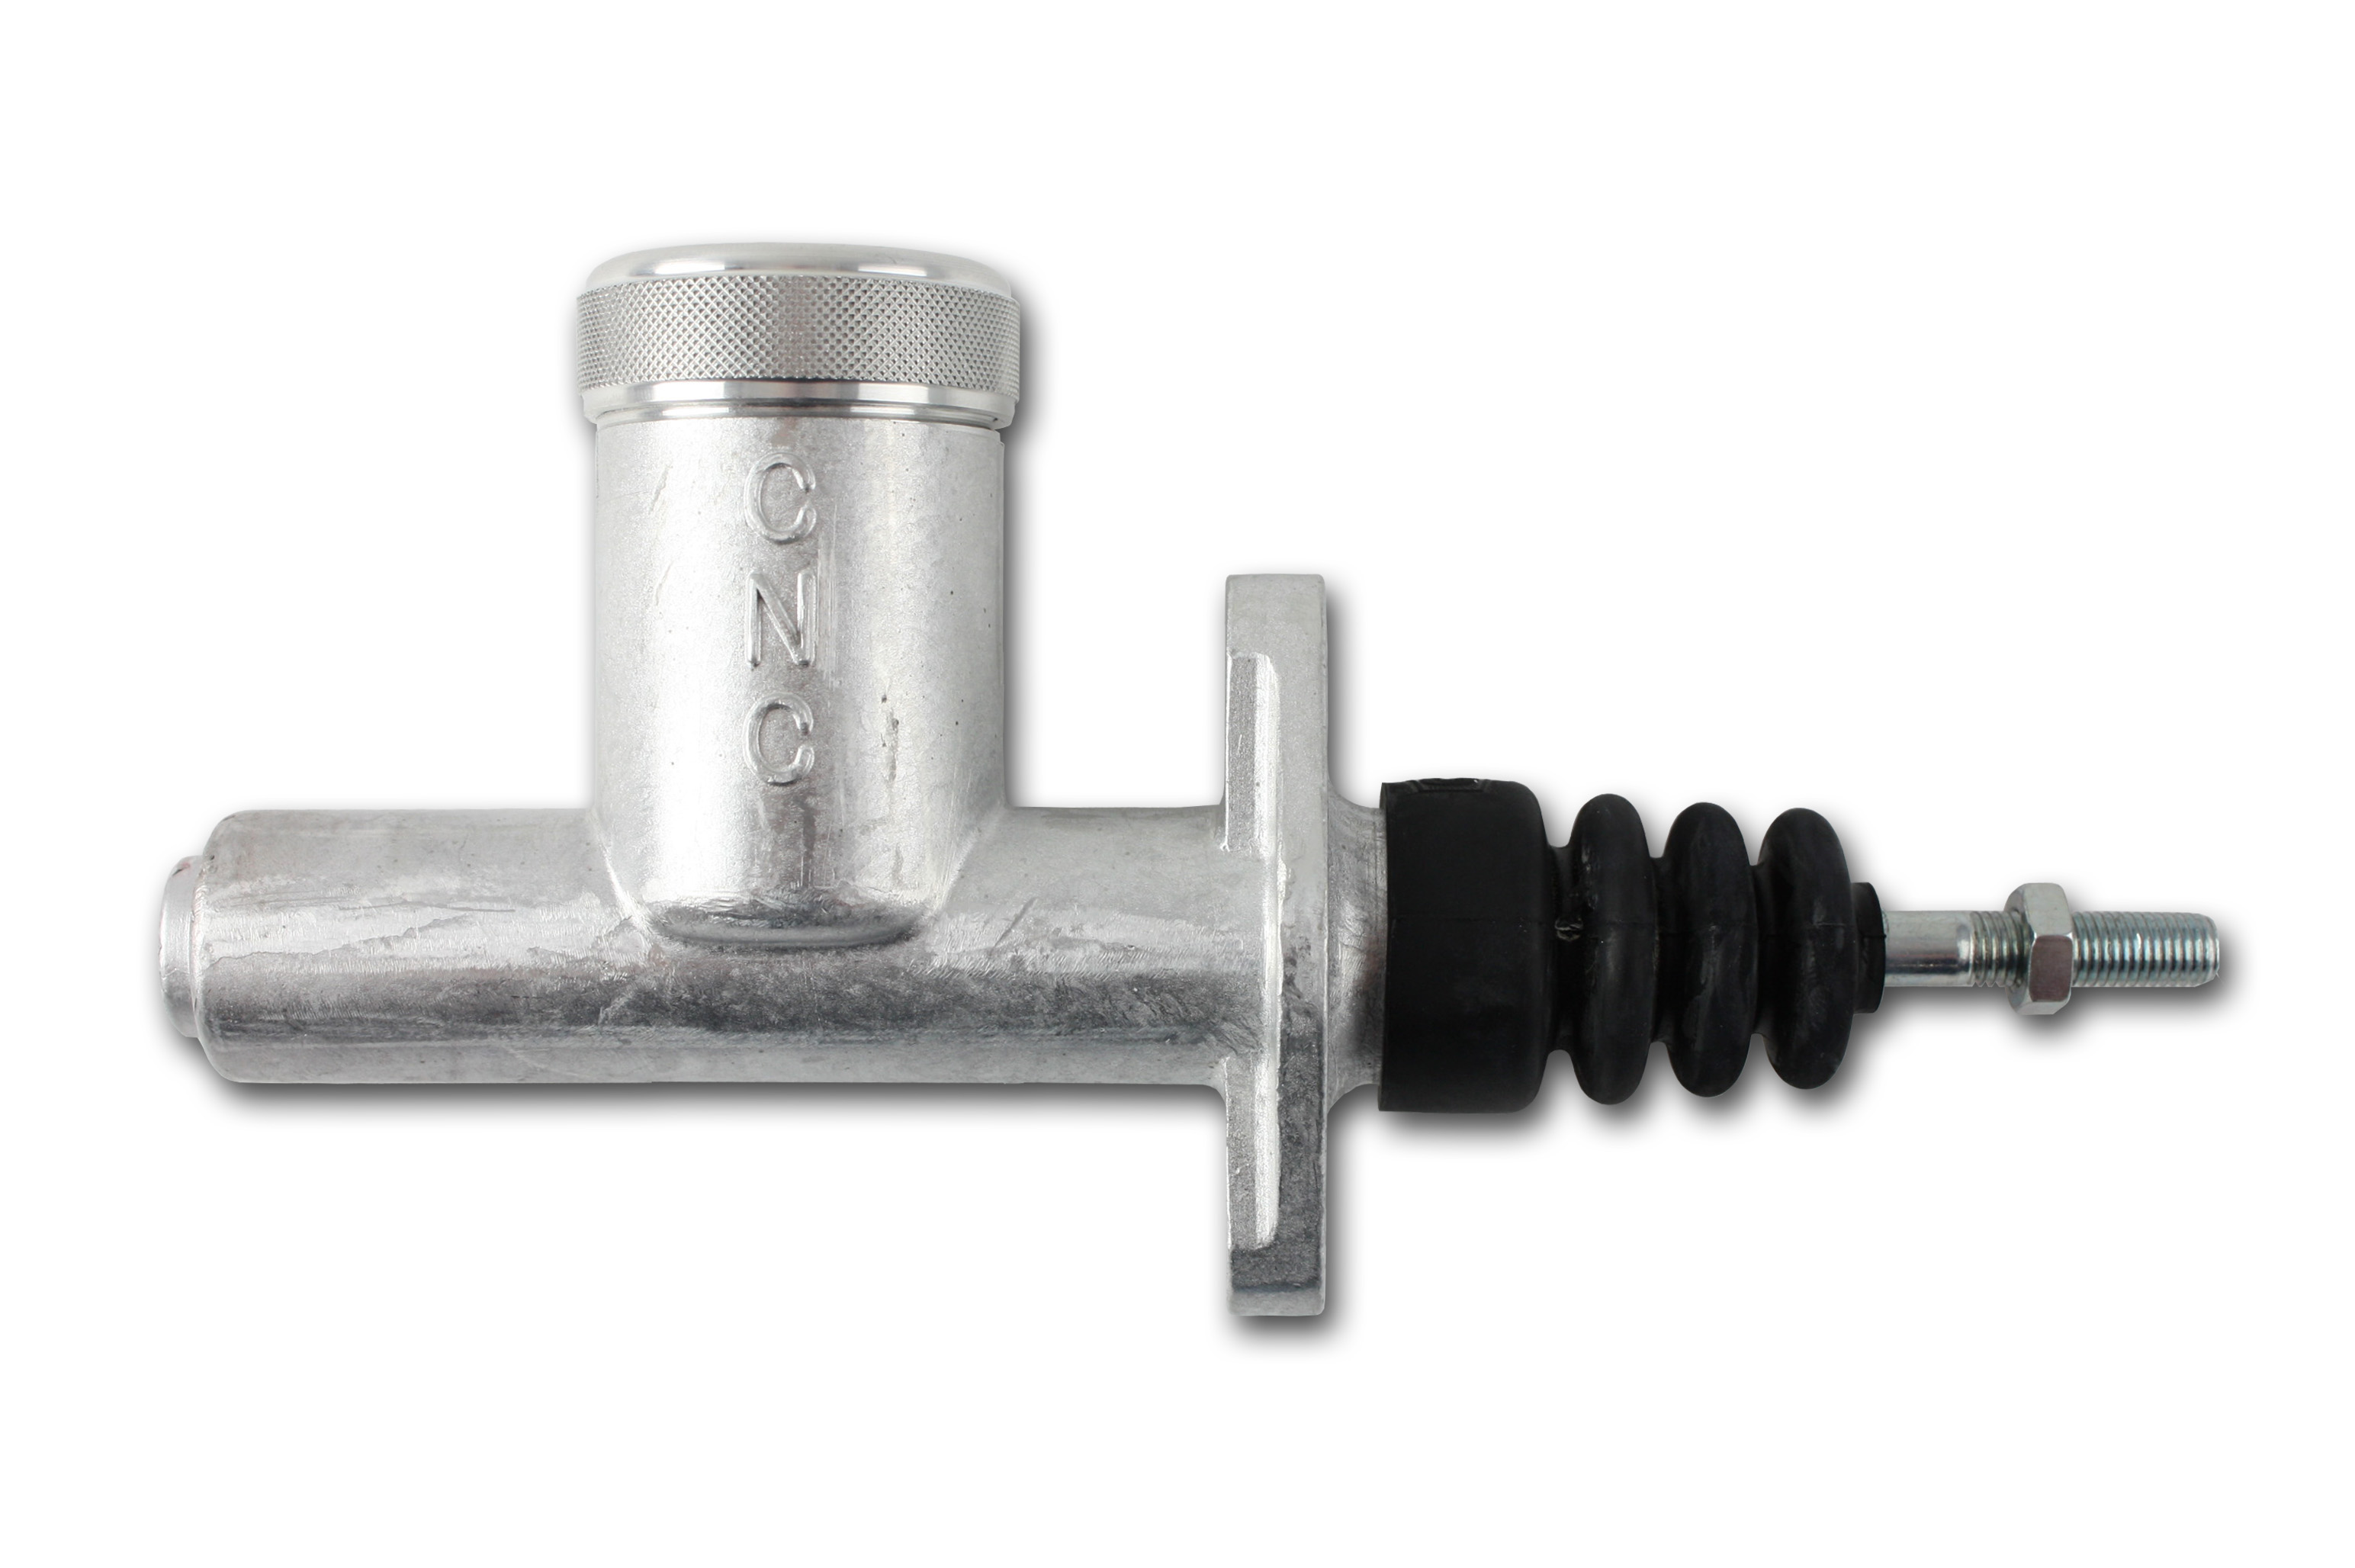 Master Cylinder Price >> 3/4 in. MASTER CYLINDER ROUND RESERVOIR - 701-3-4 at The Chassis Shop